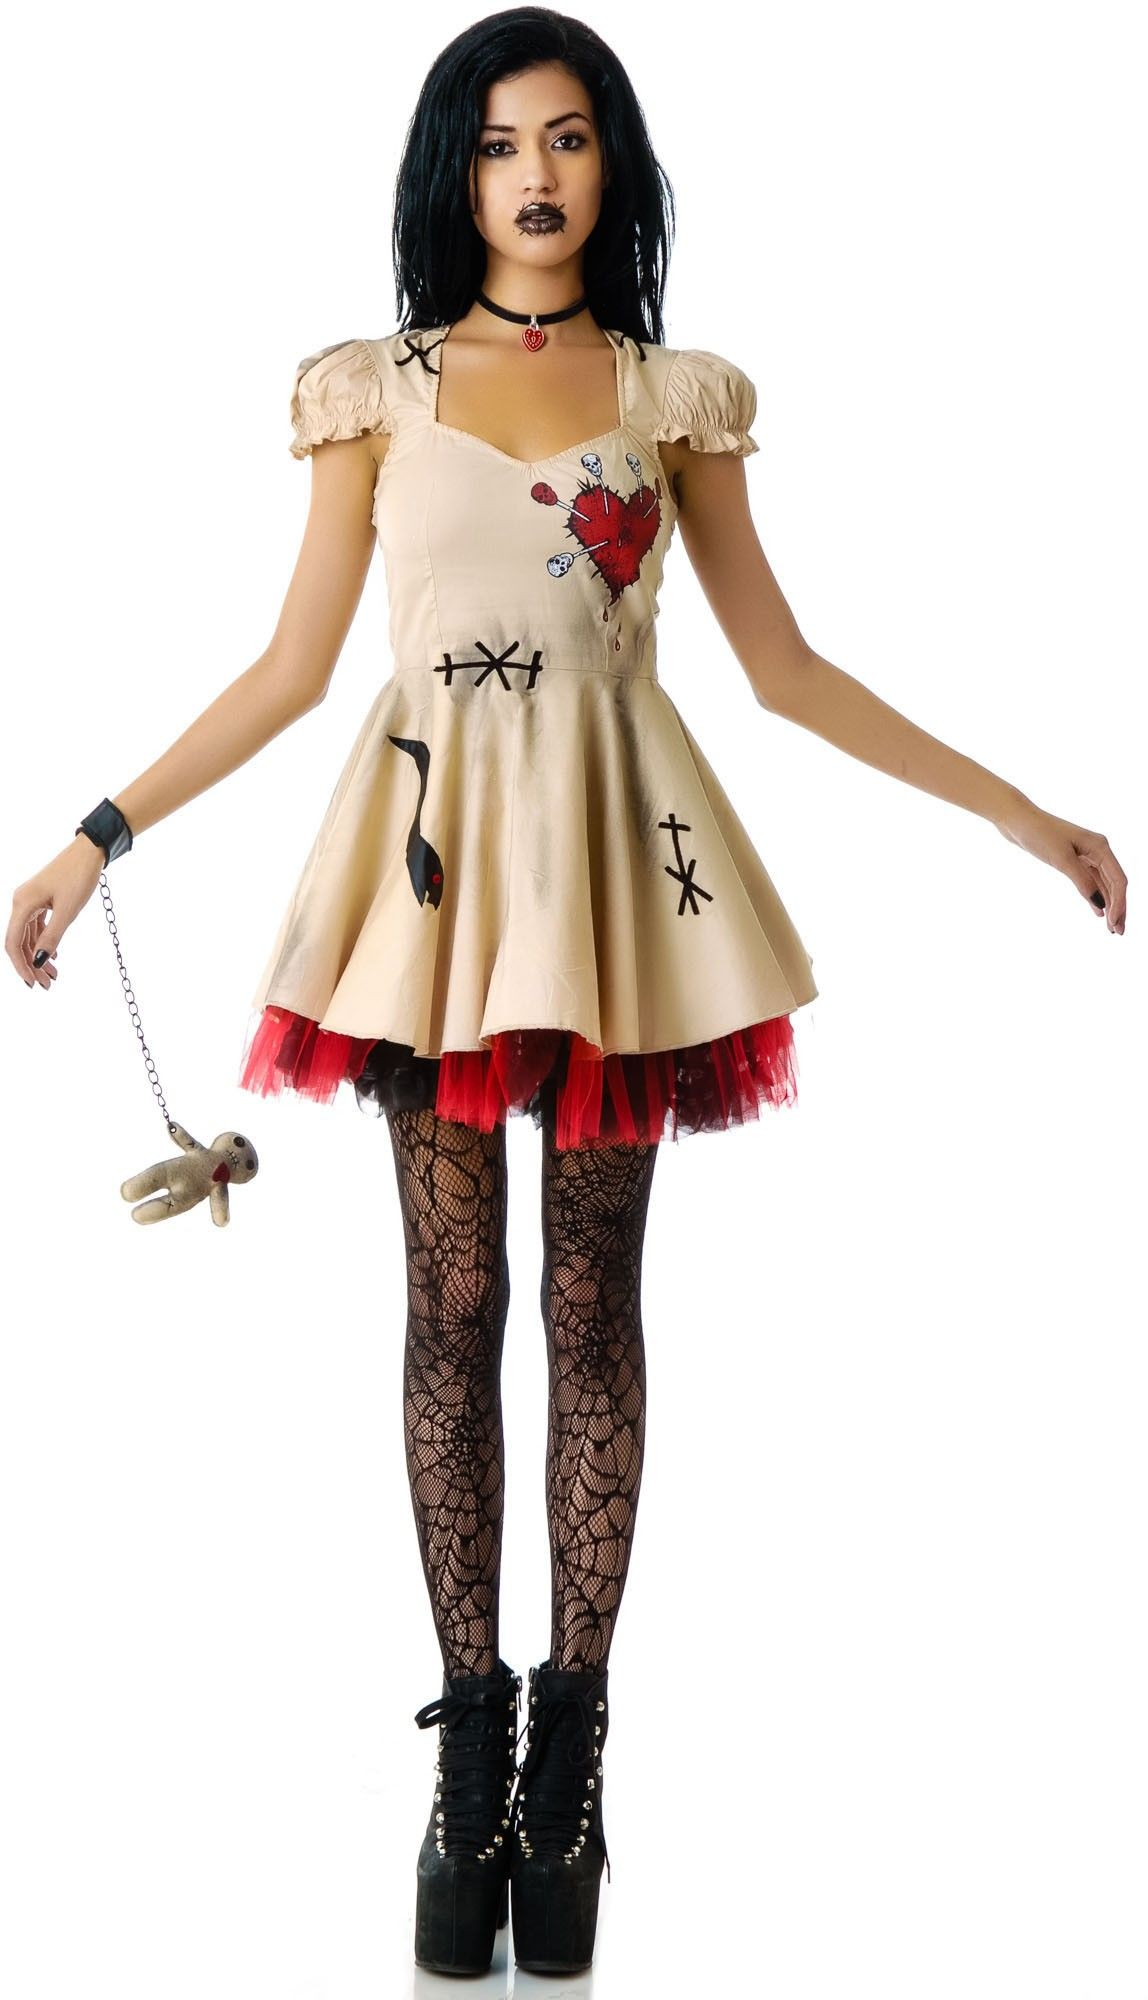 Voodoo Doll Costume | Voodoo dolls, Lip service and Costumes